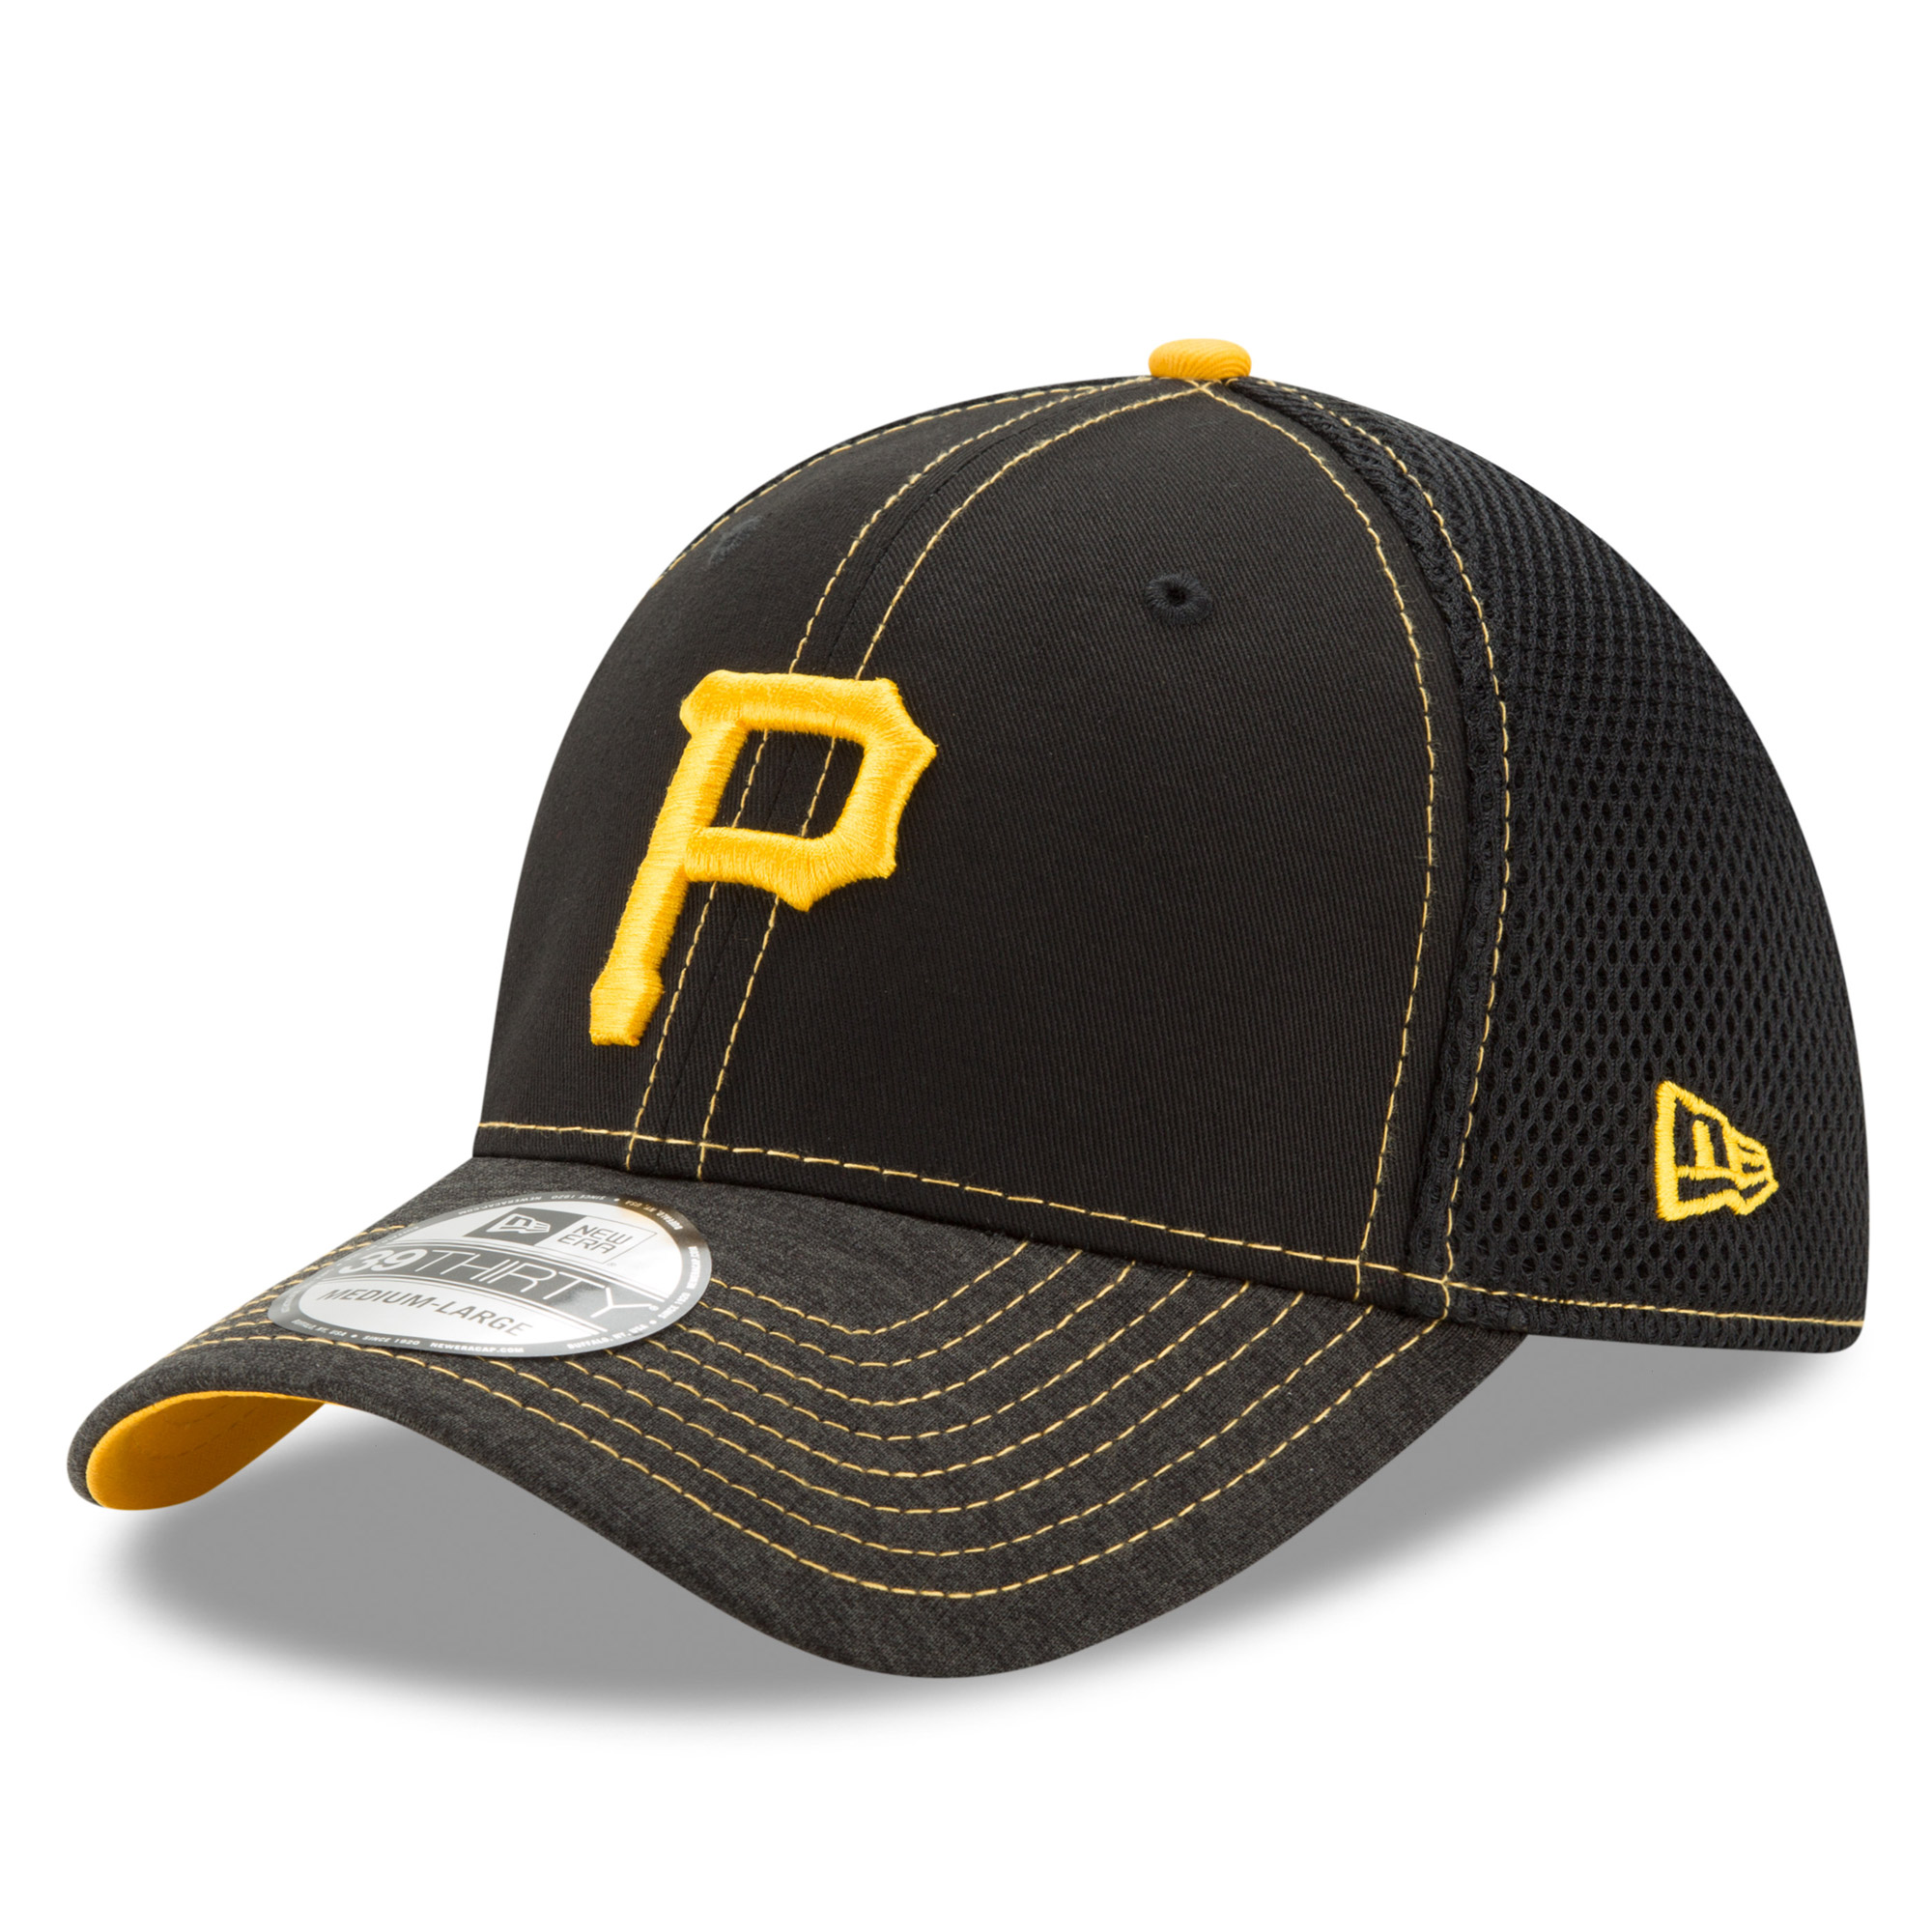 Pittsburgh Pirates New Era Shadow Burst 39THIRTY Flex Hat - Black